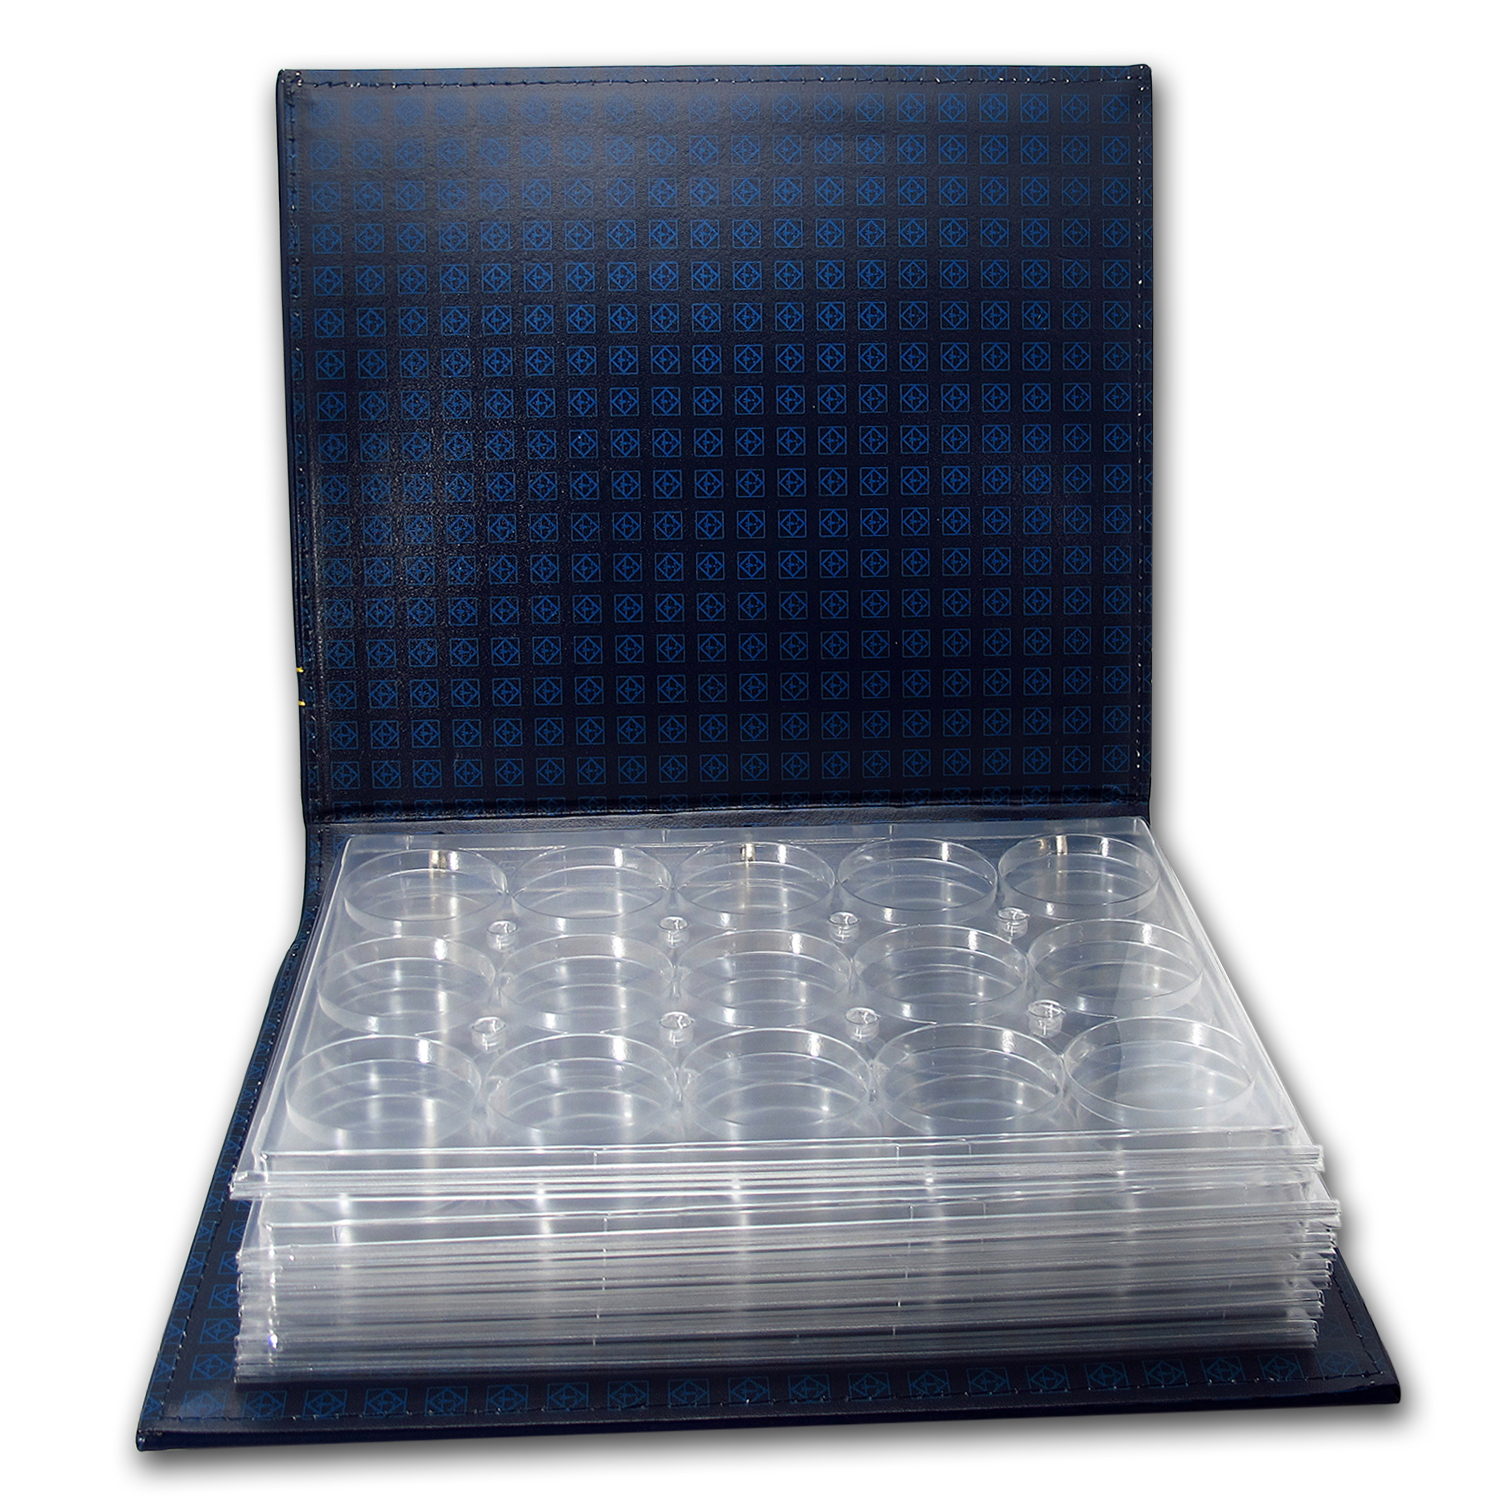 Vista 3-Ring Binder for Coins in Capsules - Holds 90 Coins